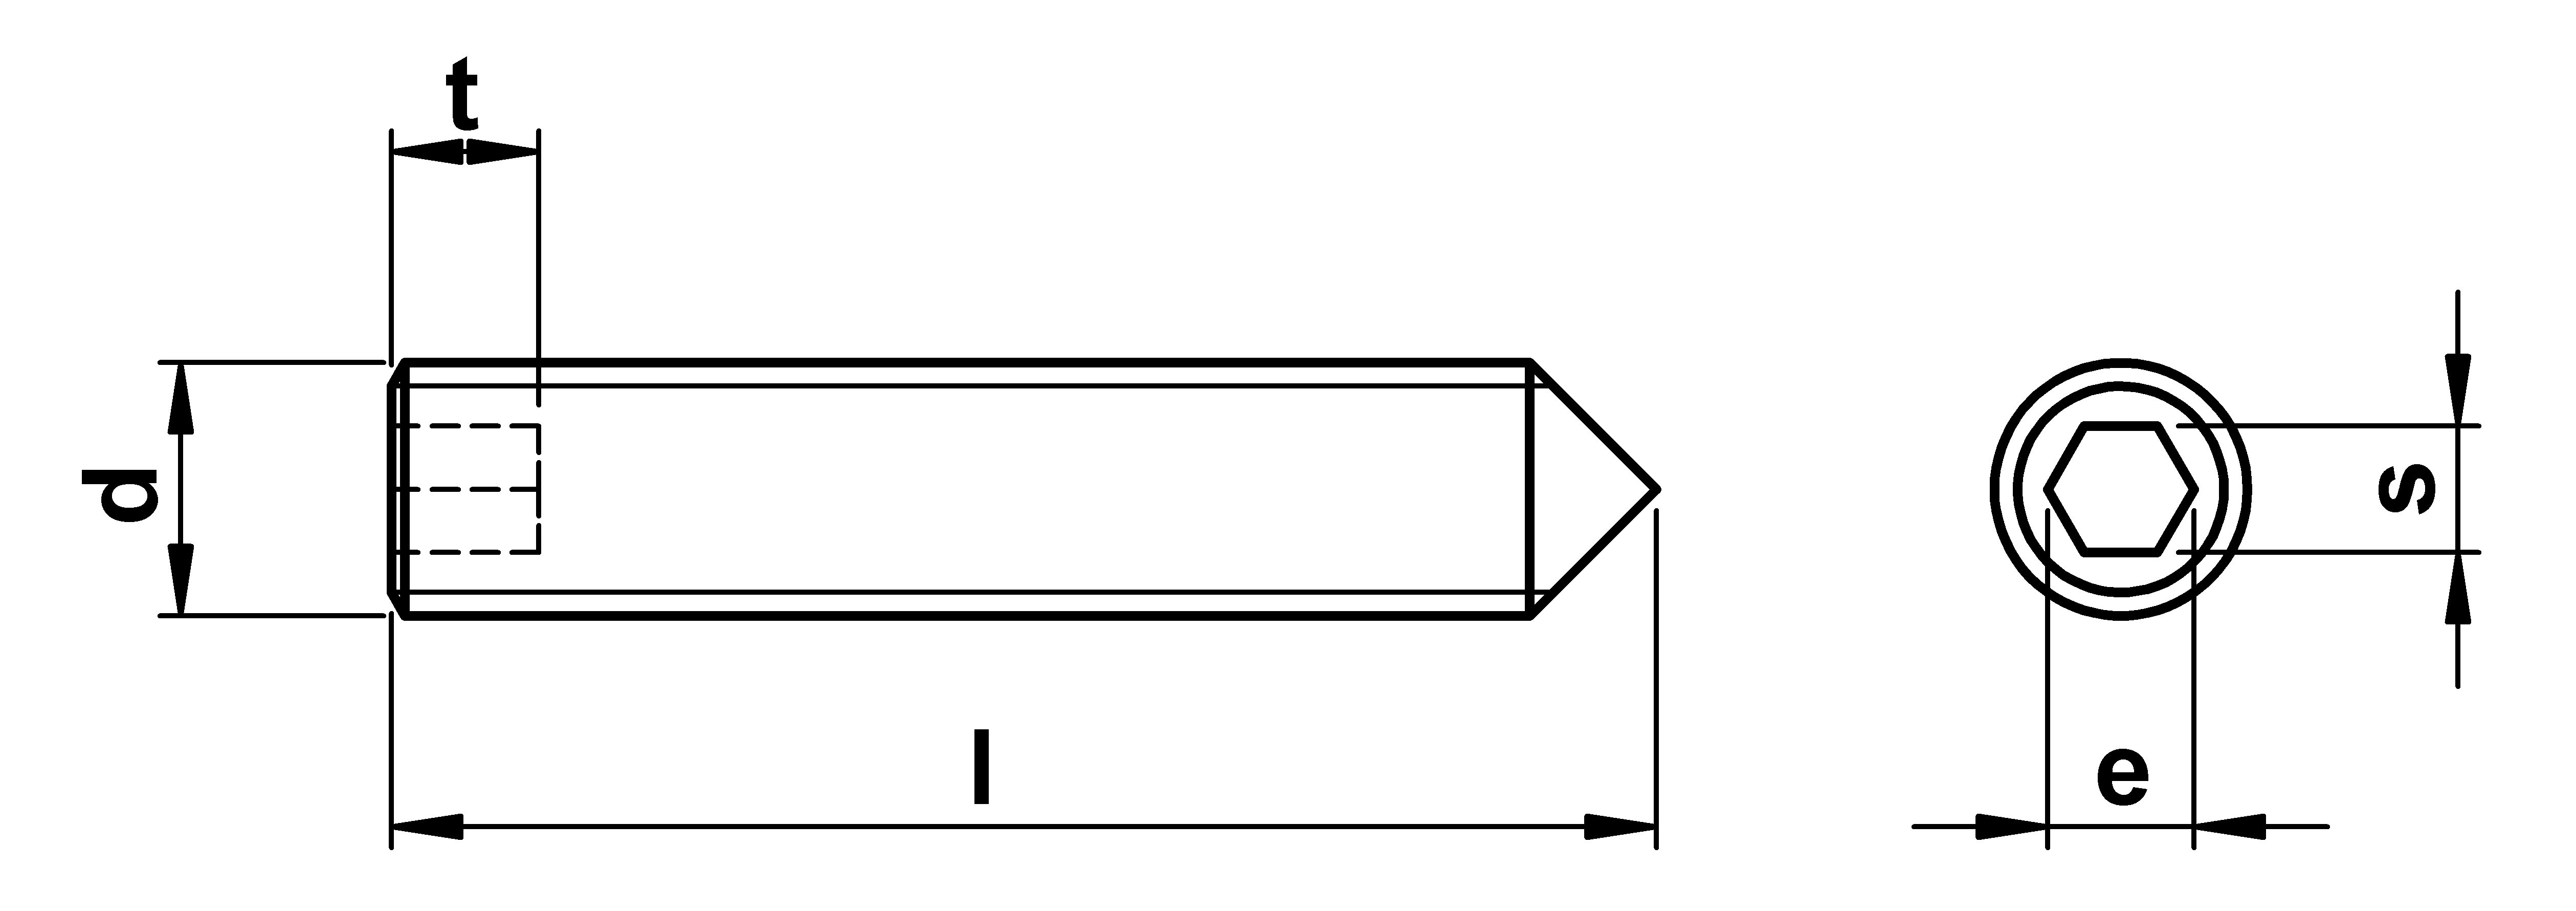 technical drawing of Cone Point Grub Screws ISO 4027 (DIN 914)